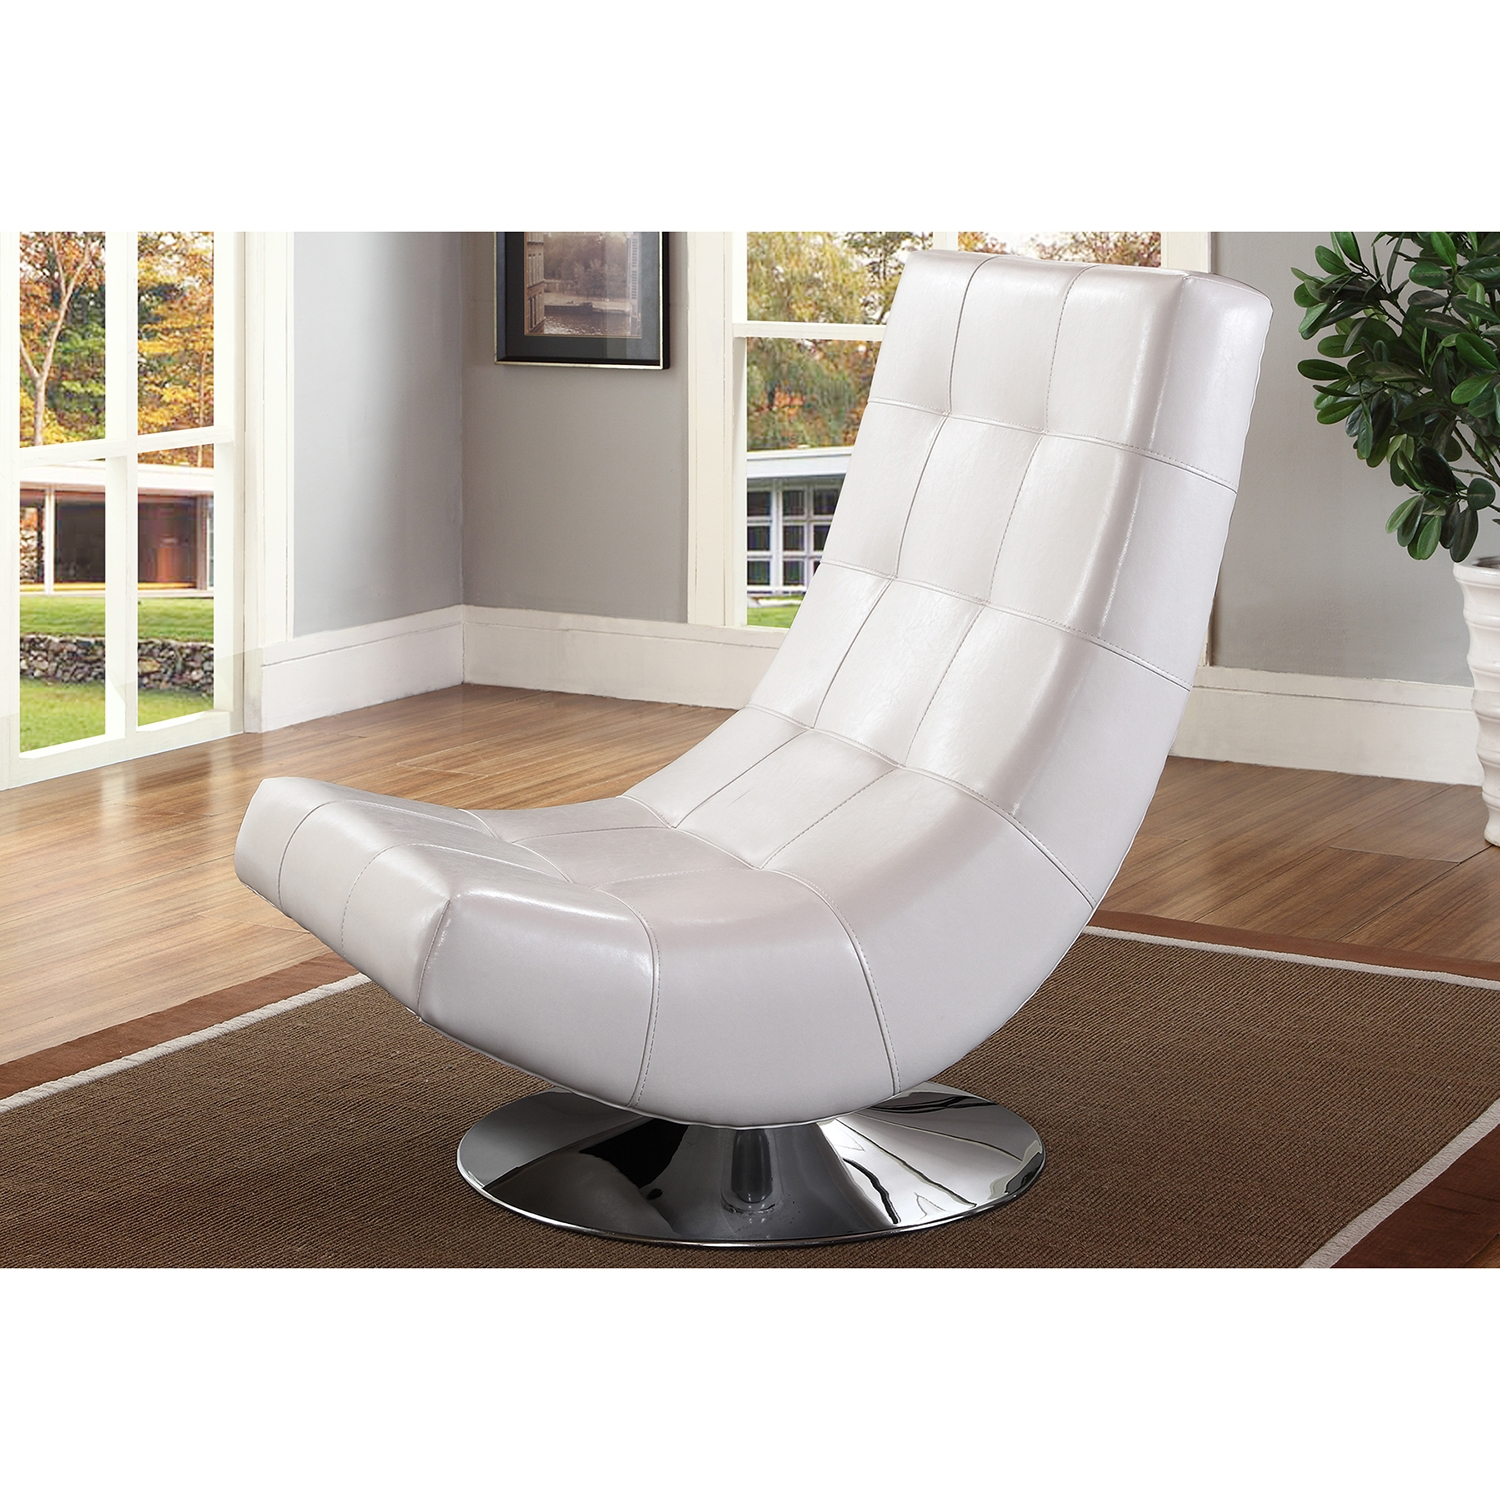 ... Baxton Studio Baxton Studio Elsa Modern And Contemporary White Faux  Leather Upholstered Swivel Chair With Metal